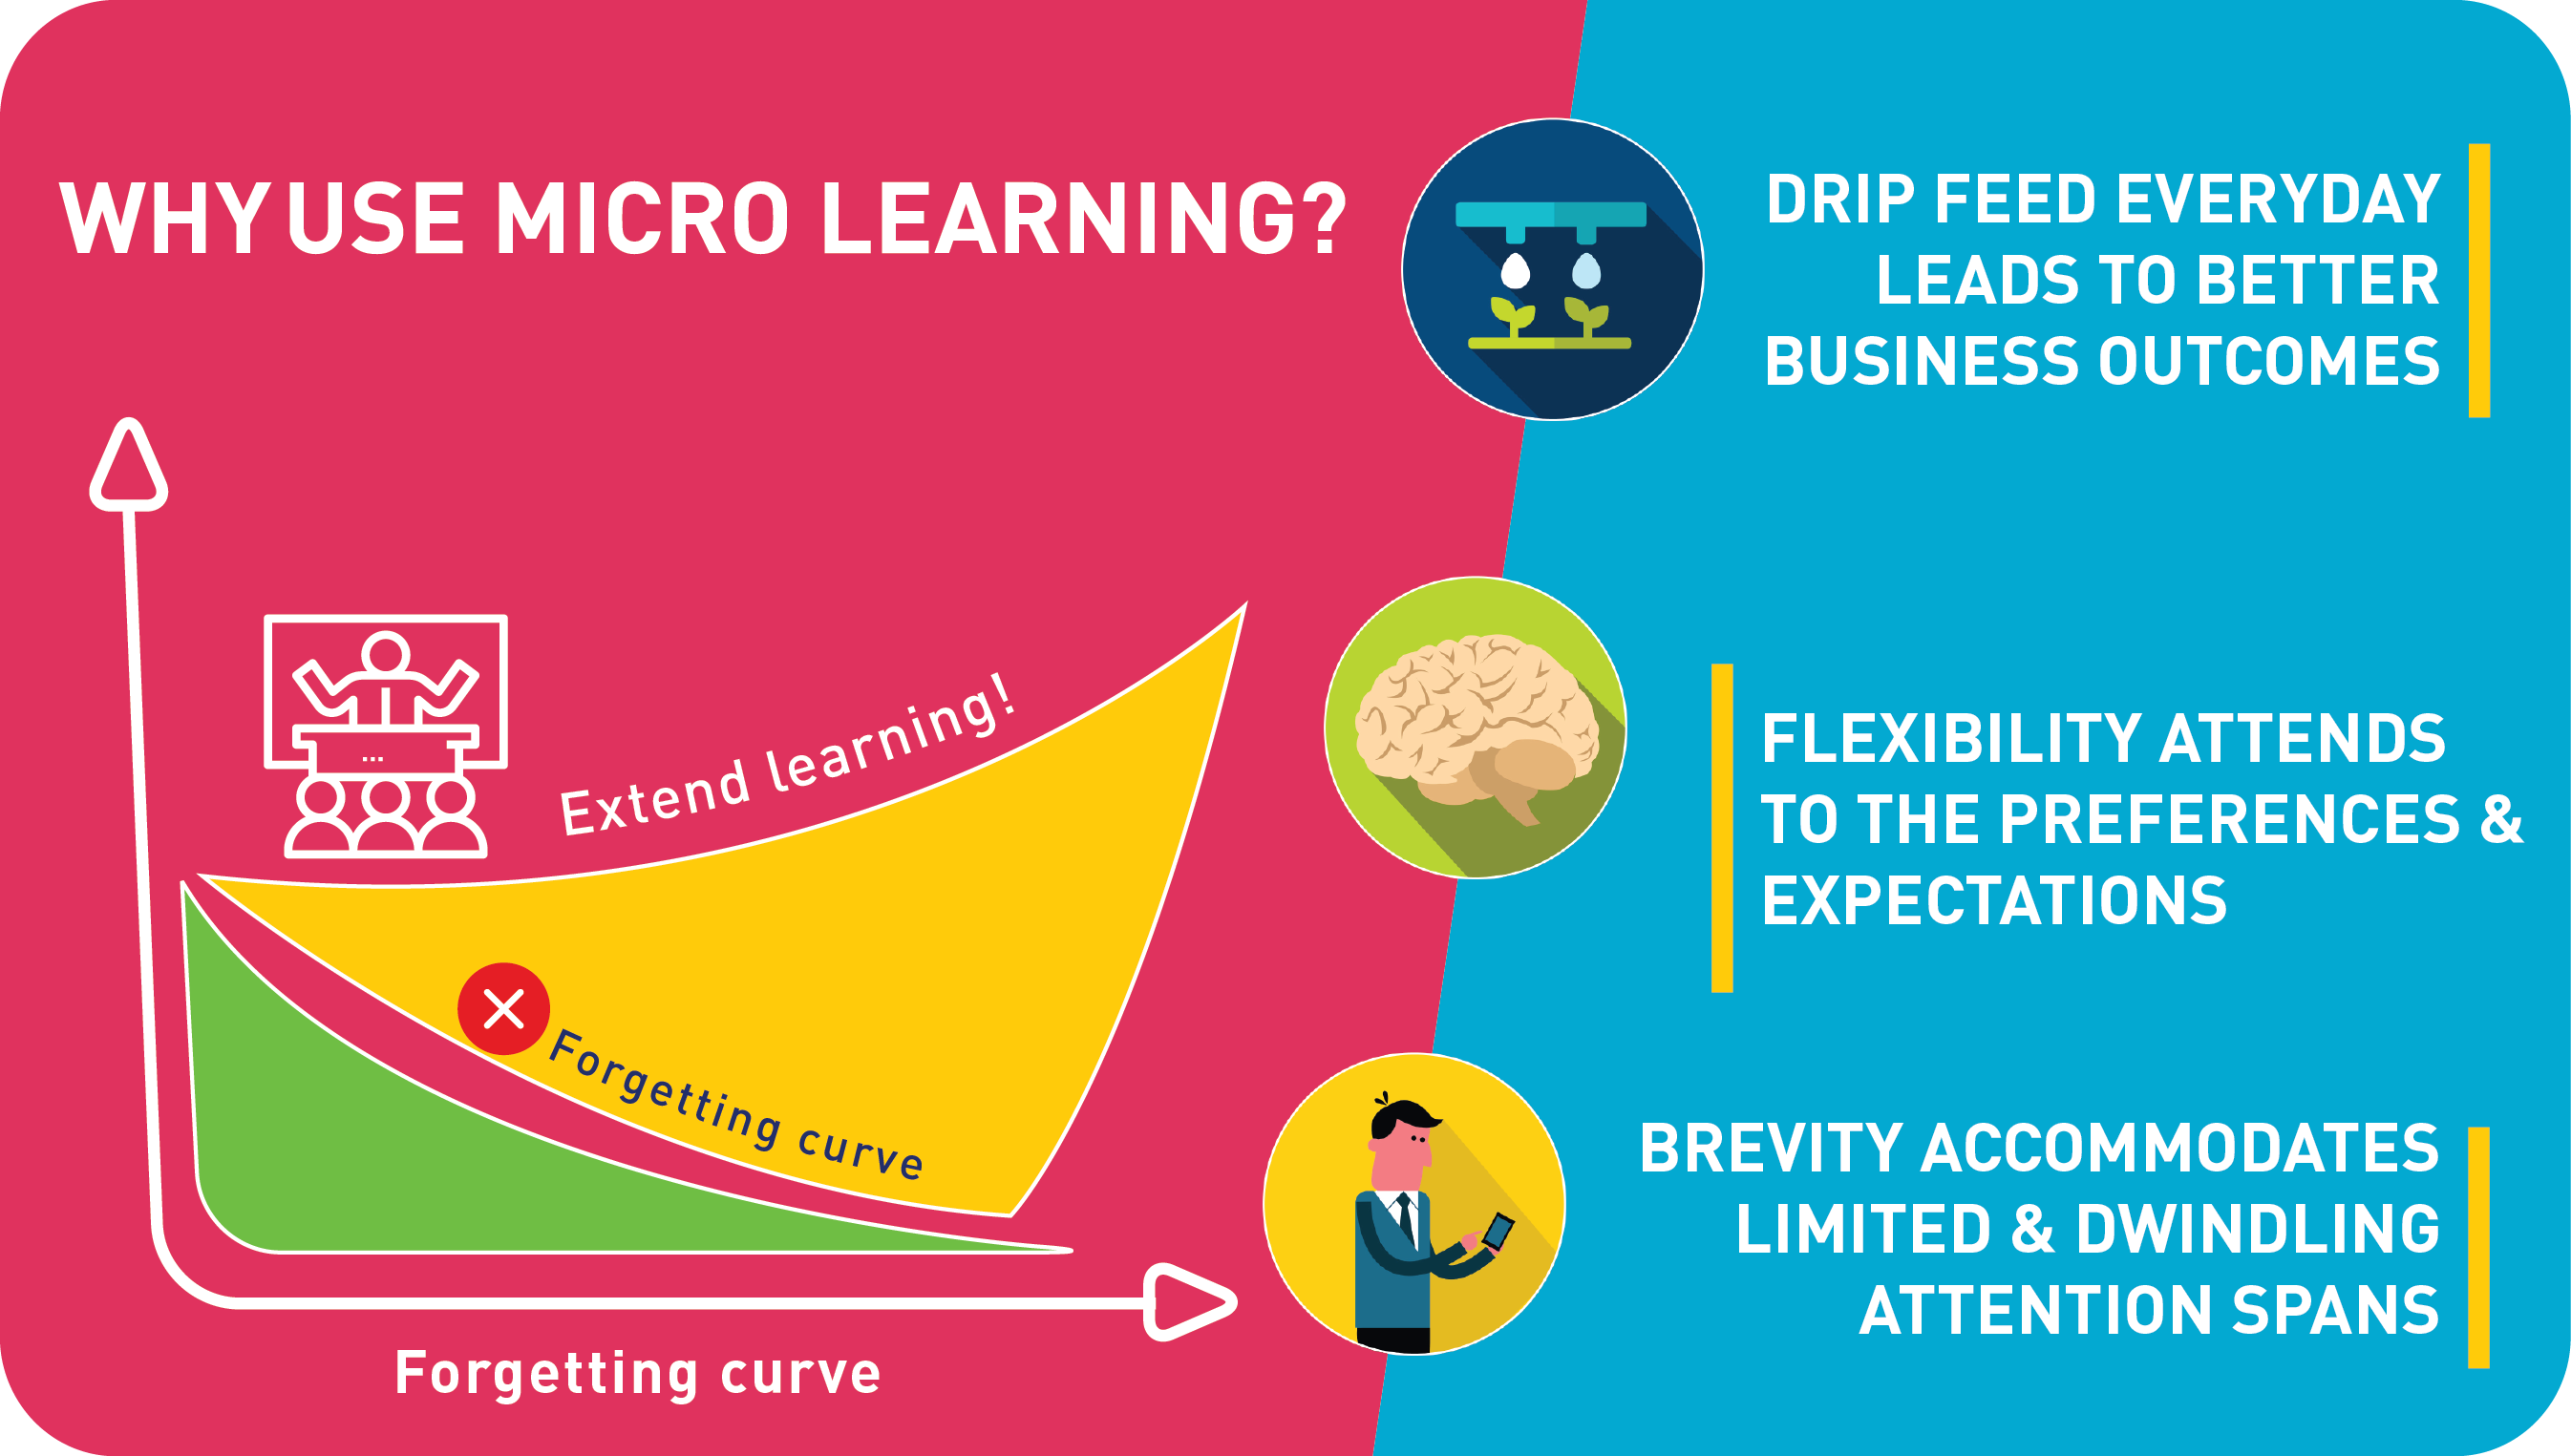 Why use micro learning